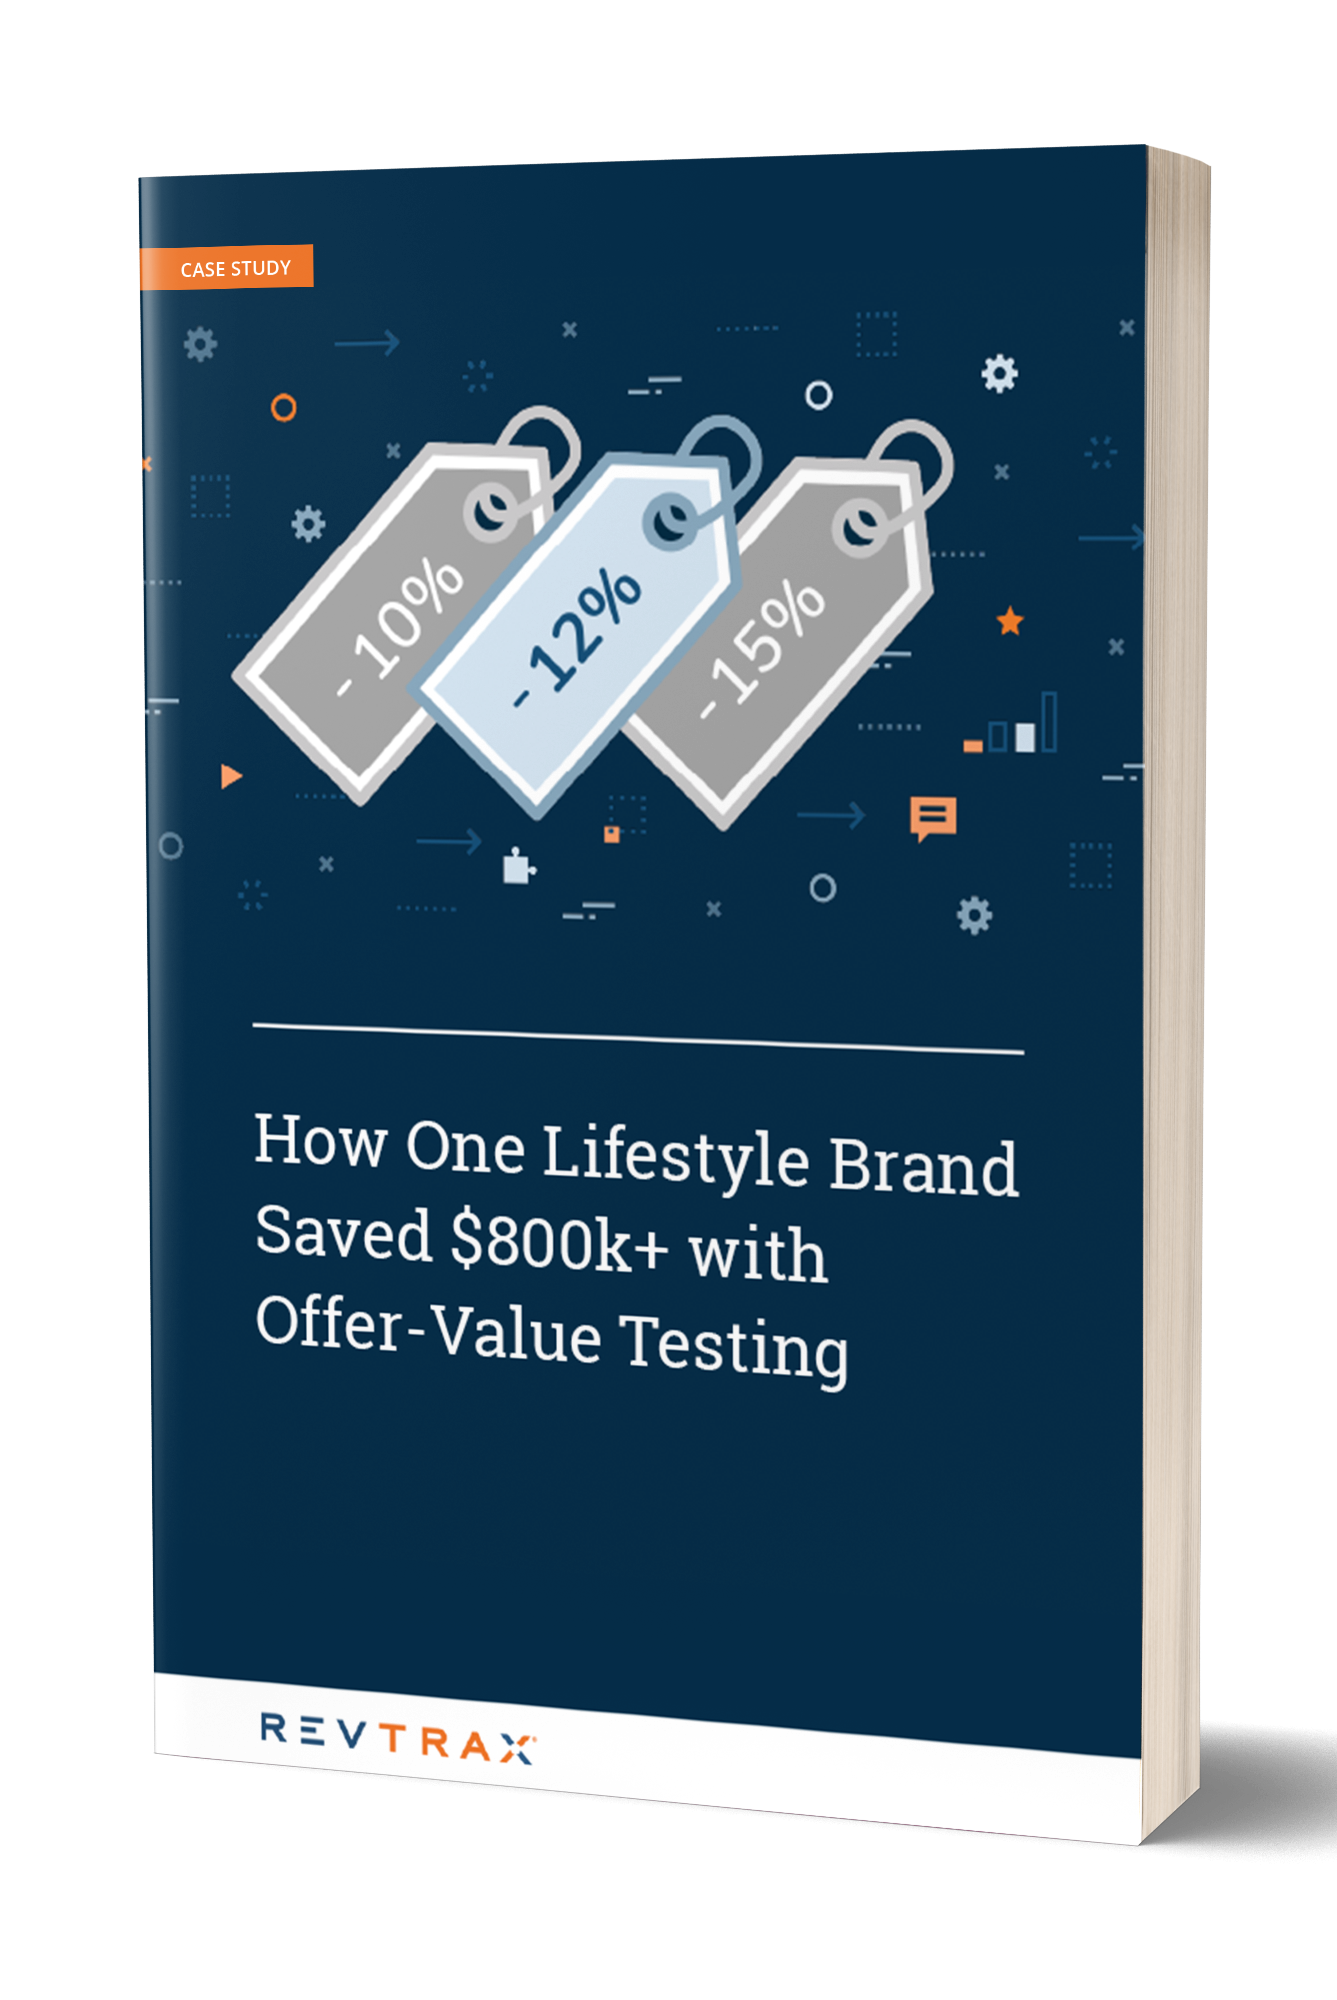 mockup-offer-value-testing (1)-1.png